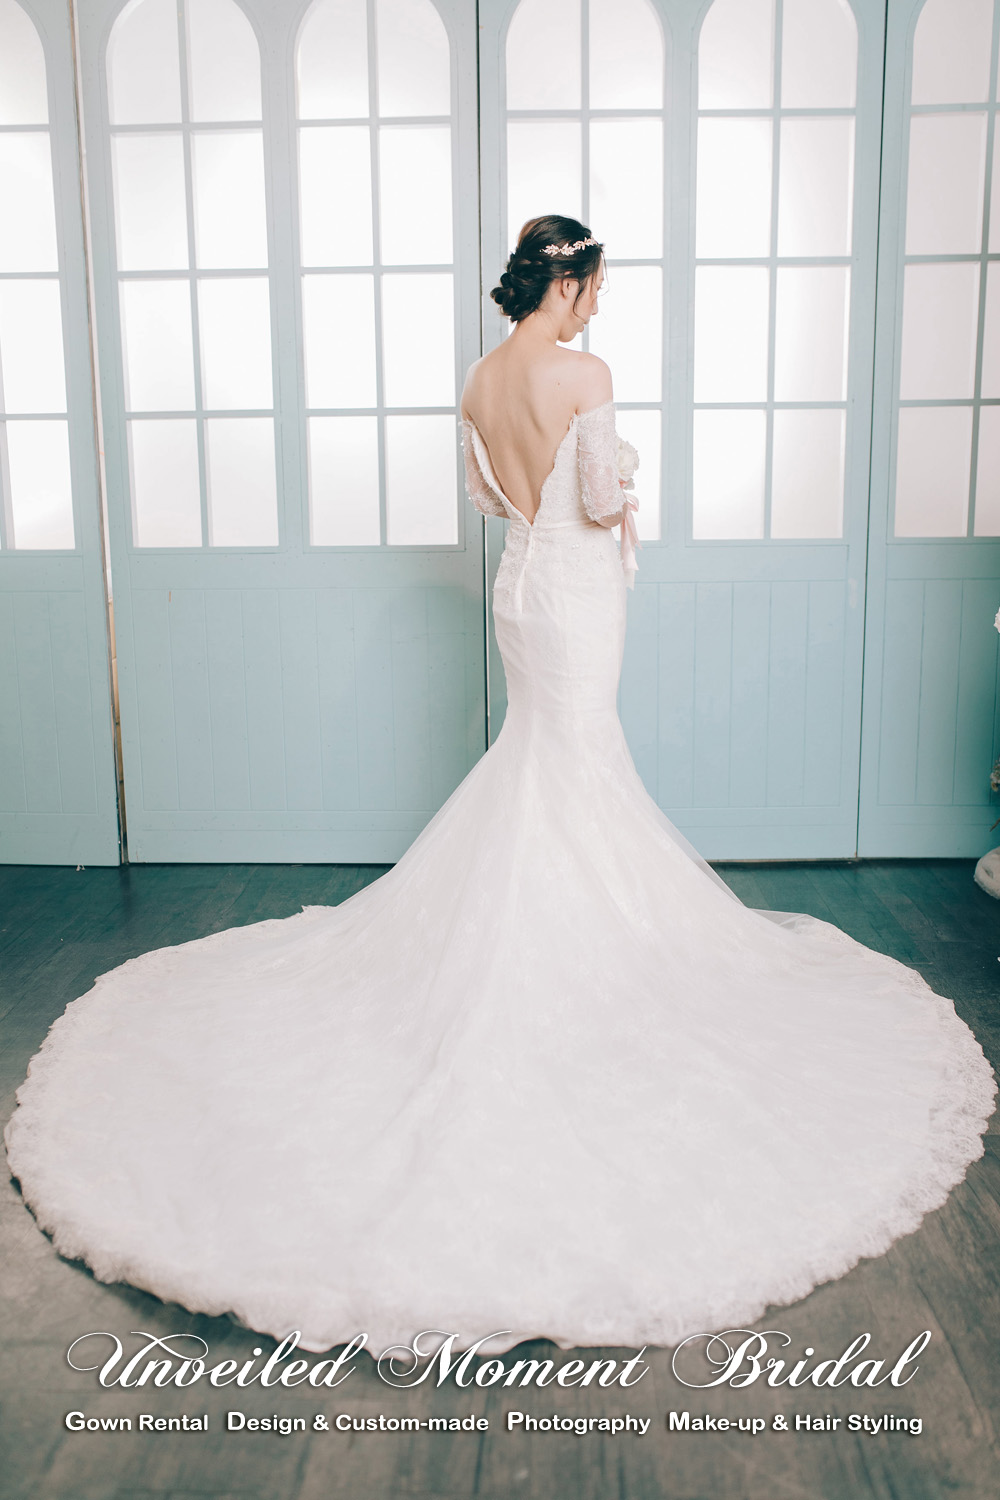 Off-the-shoulder, quarter-sleeved, deep-V neckline, V-shape low back, lace embellishment, mermaid wedding dress with a court train. 跌膊中袖, 大V領口, 大露背, 蕾絲釘珠, 美背魚尾婚紗